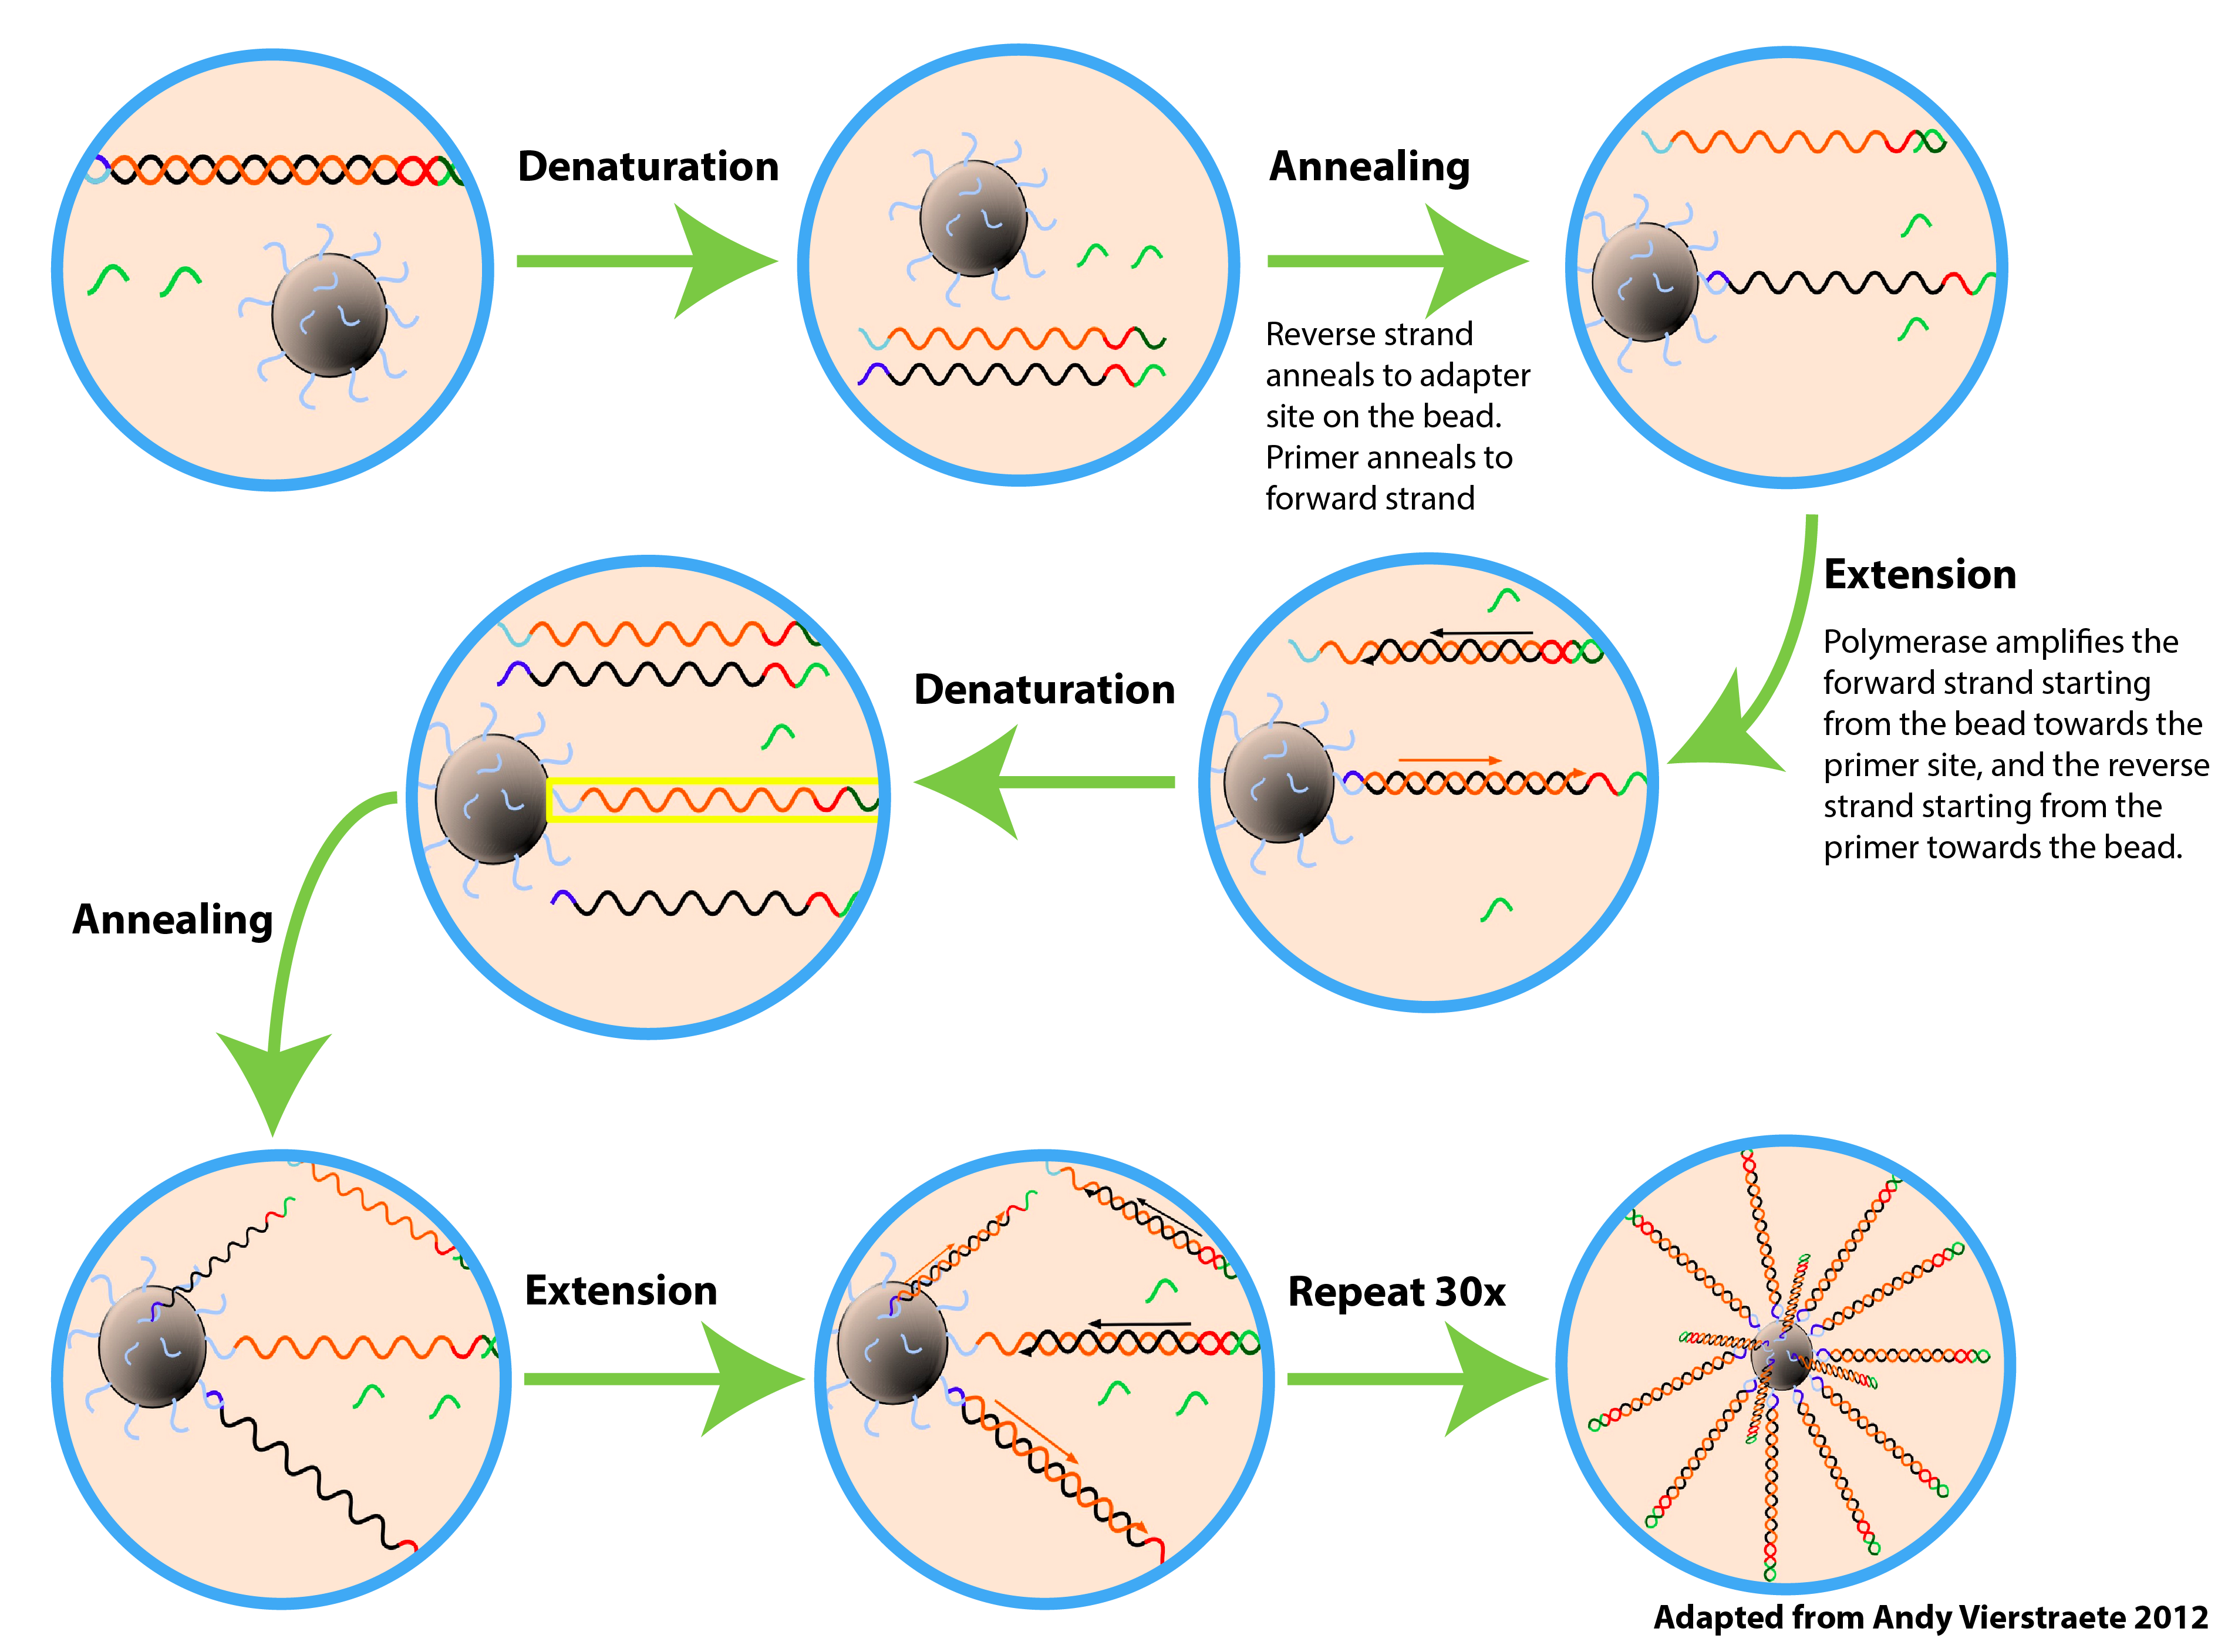 ePCR amplifies DNA strands on beads.